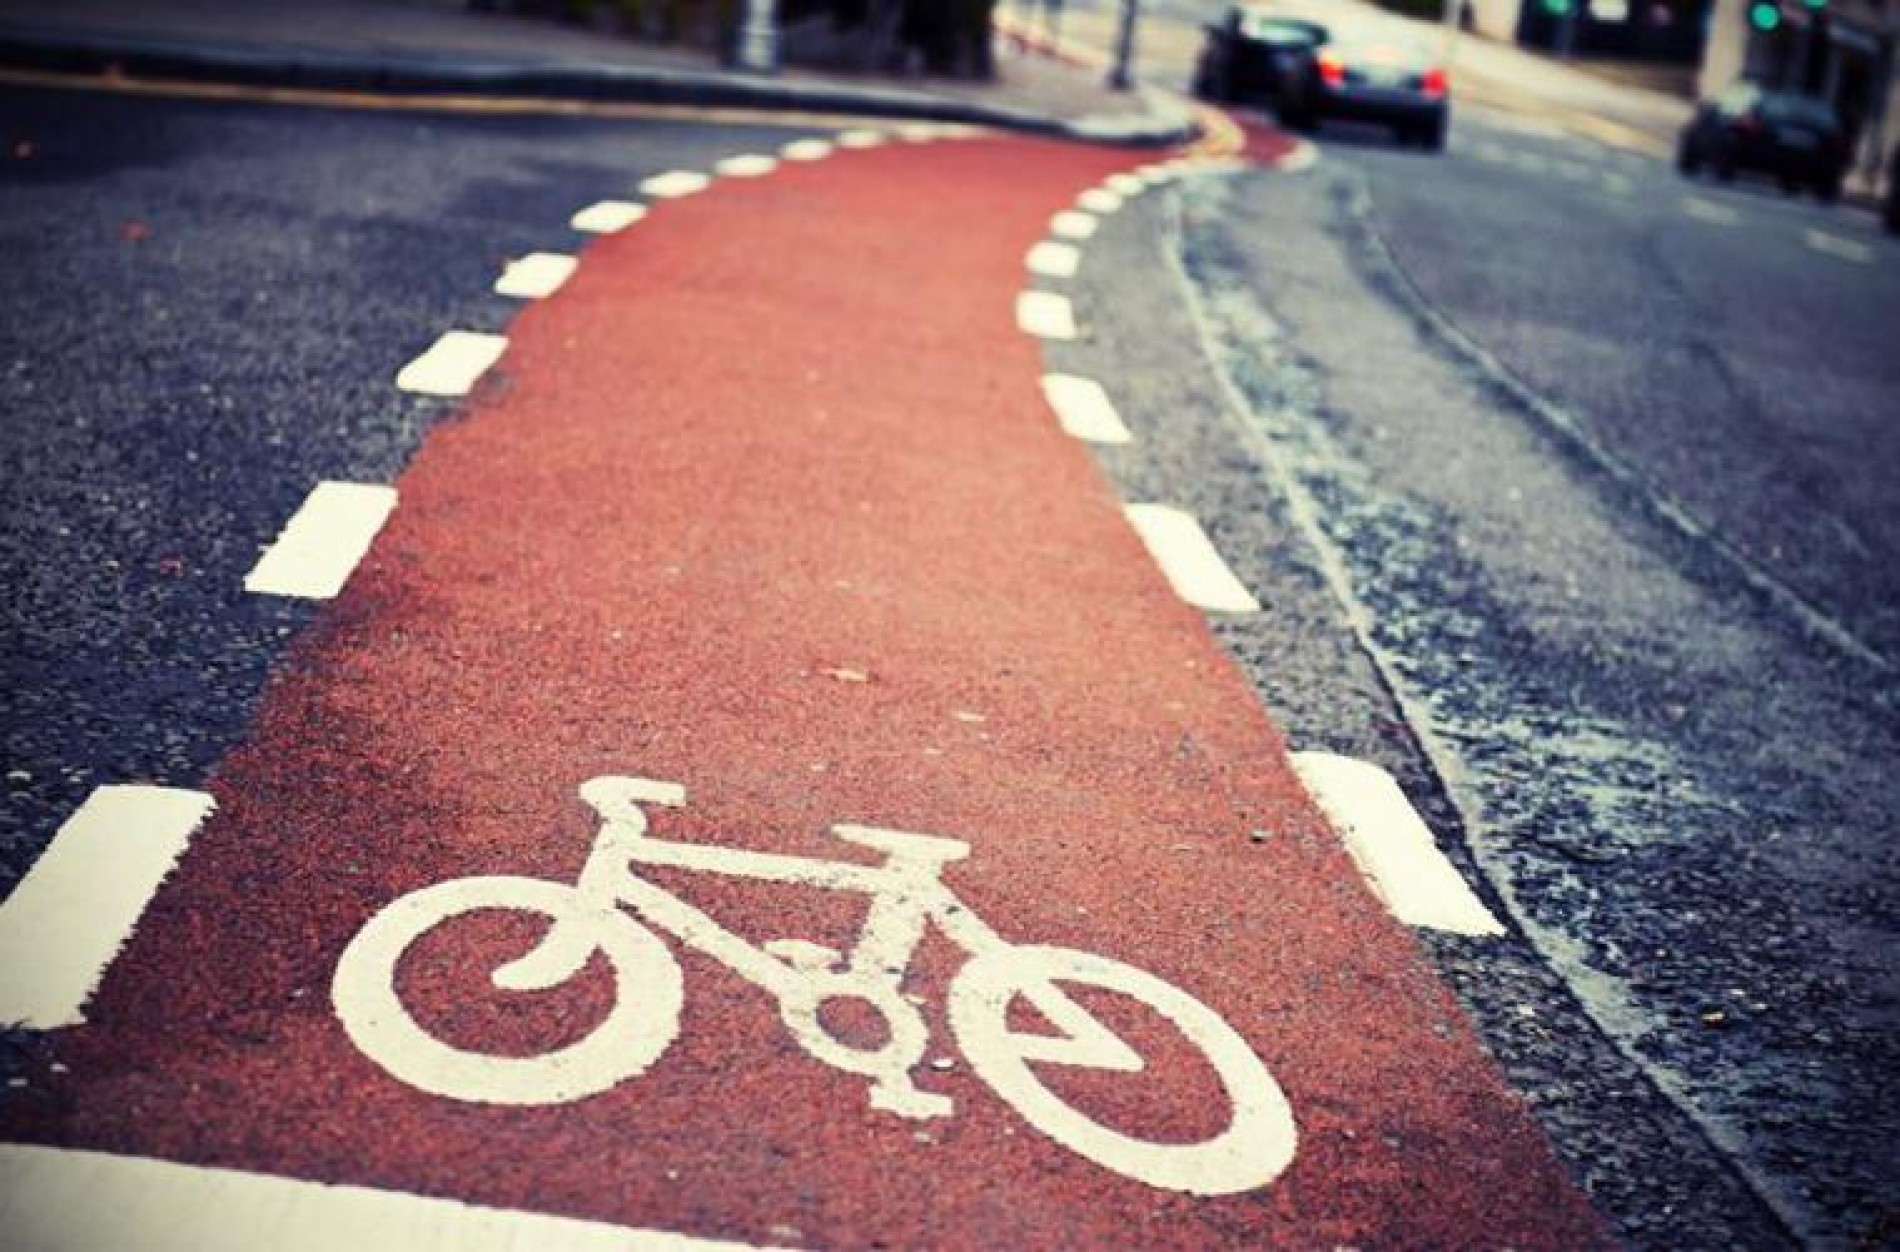 CYCLING IN TOTAL SAFETY